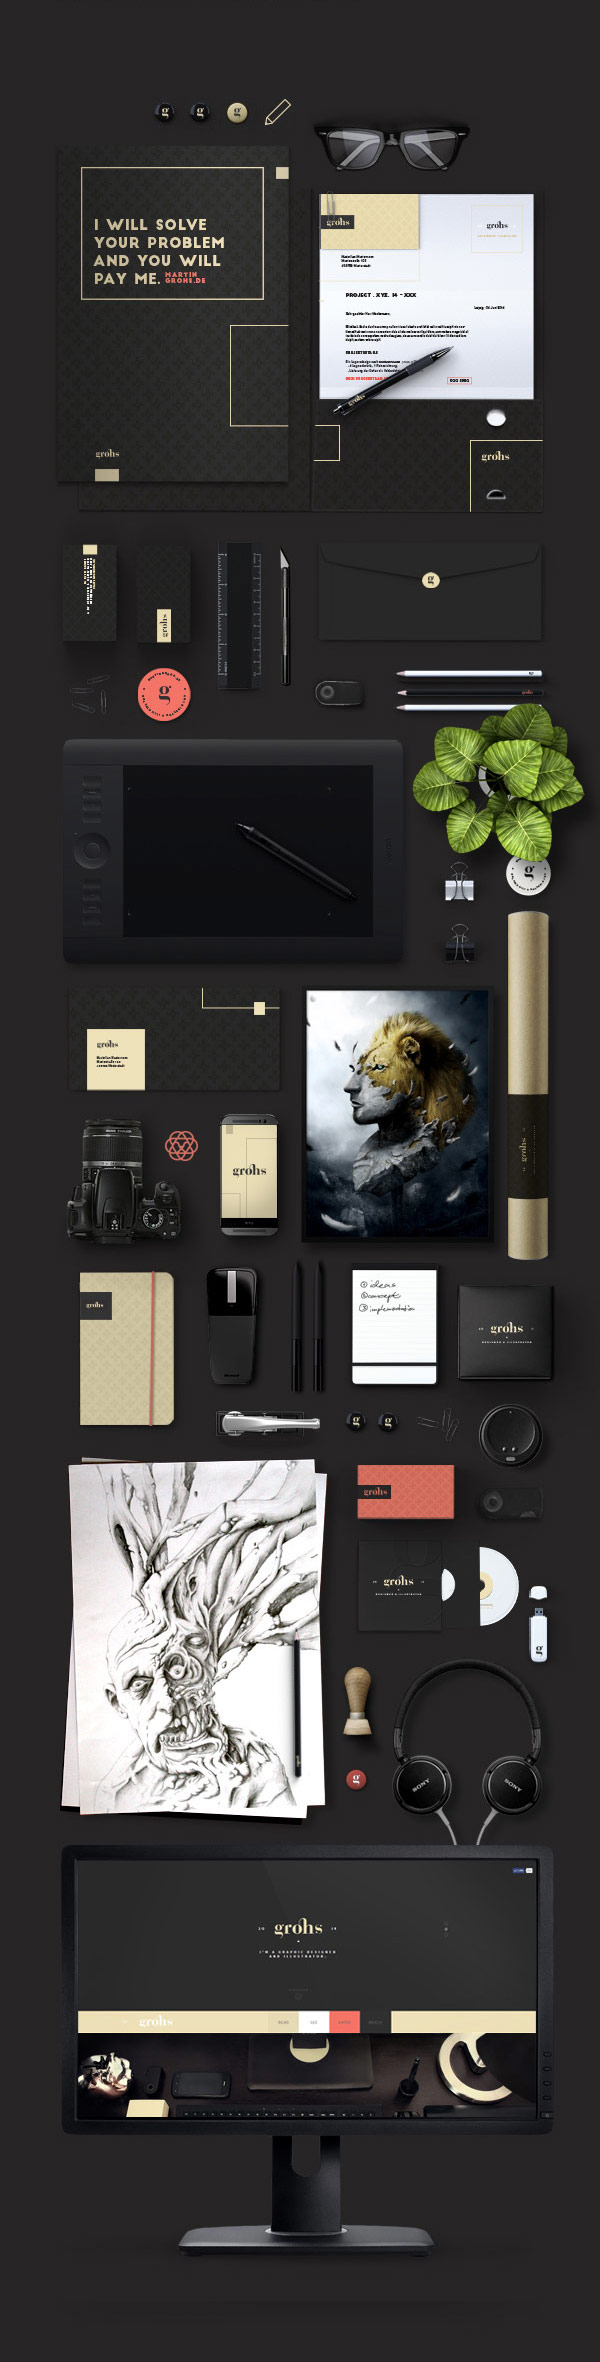 Martin Grohs, a sophisticated rebranding project.